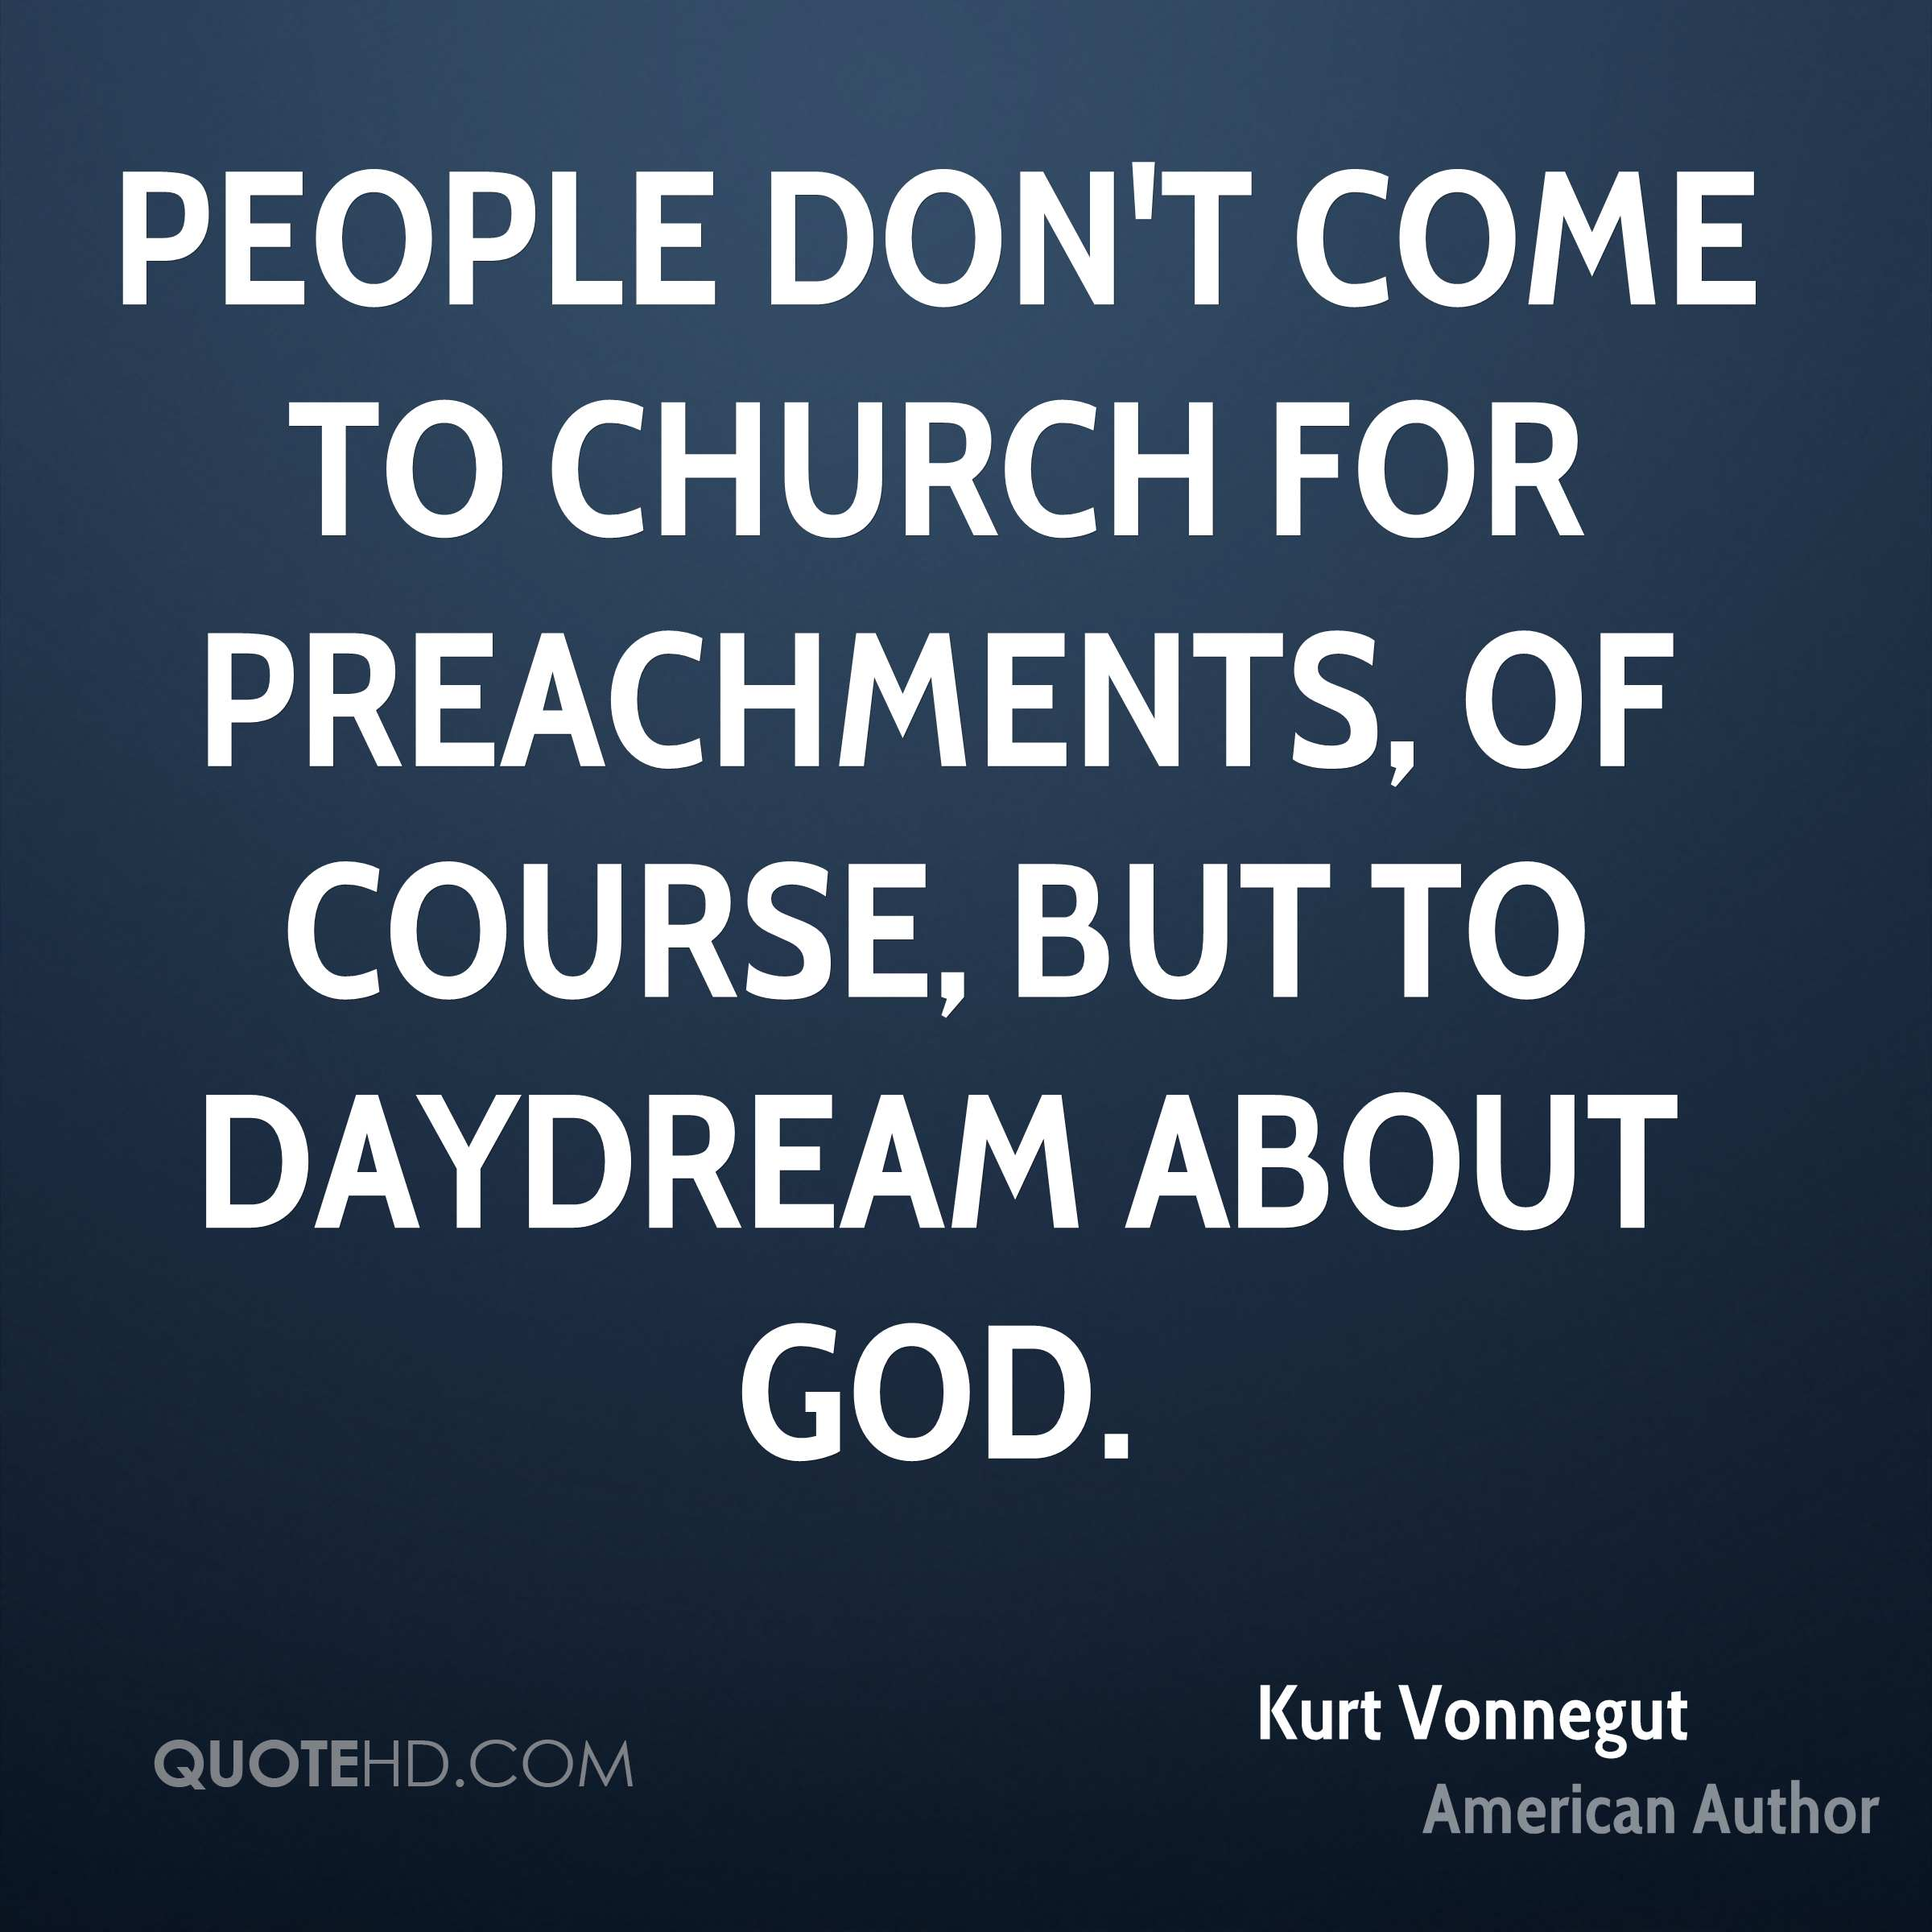 People don't come to church for preachments, of course, but to daydream about God.